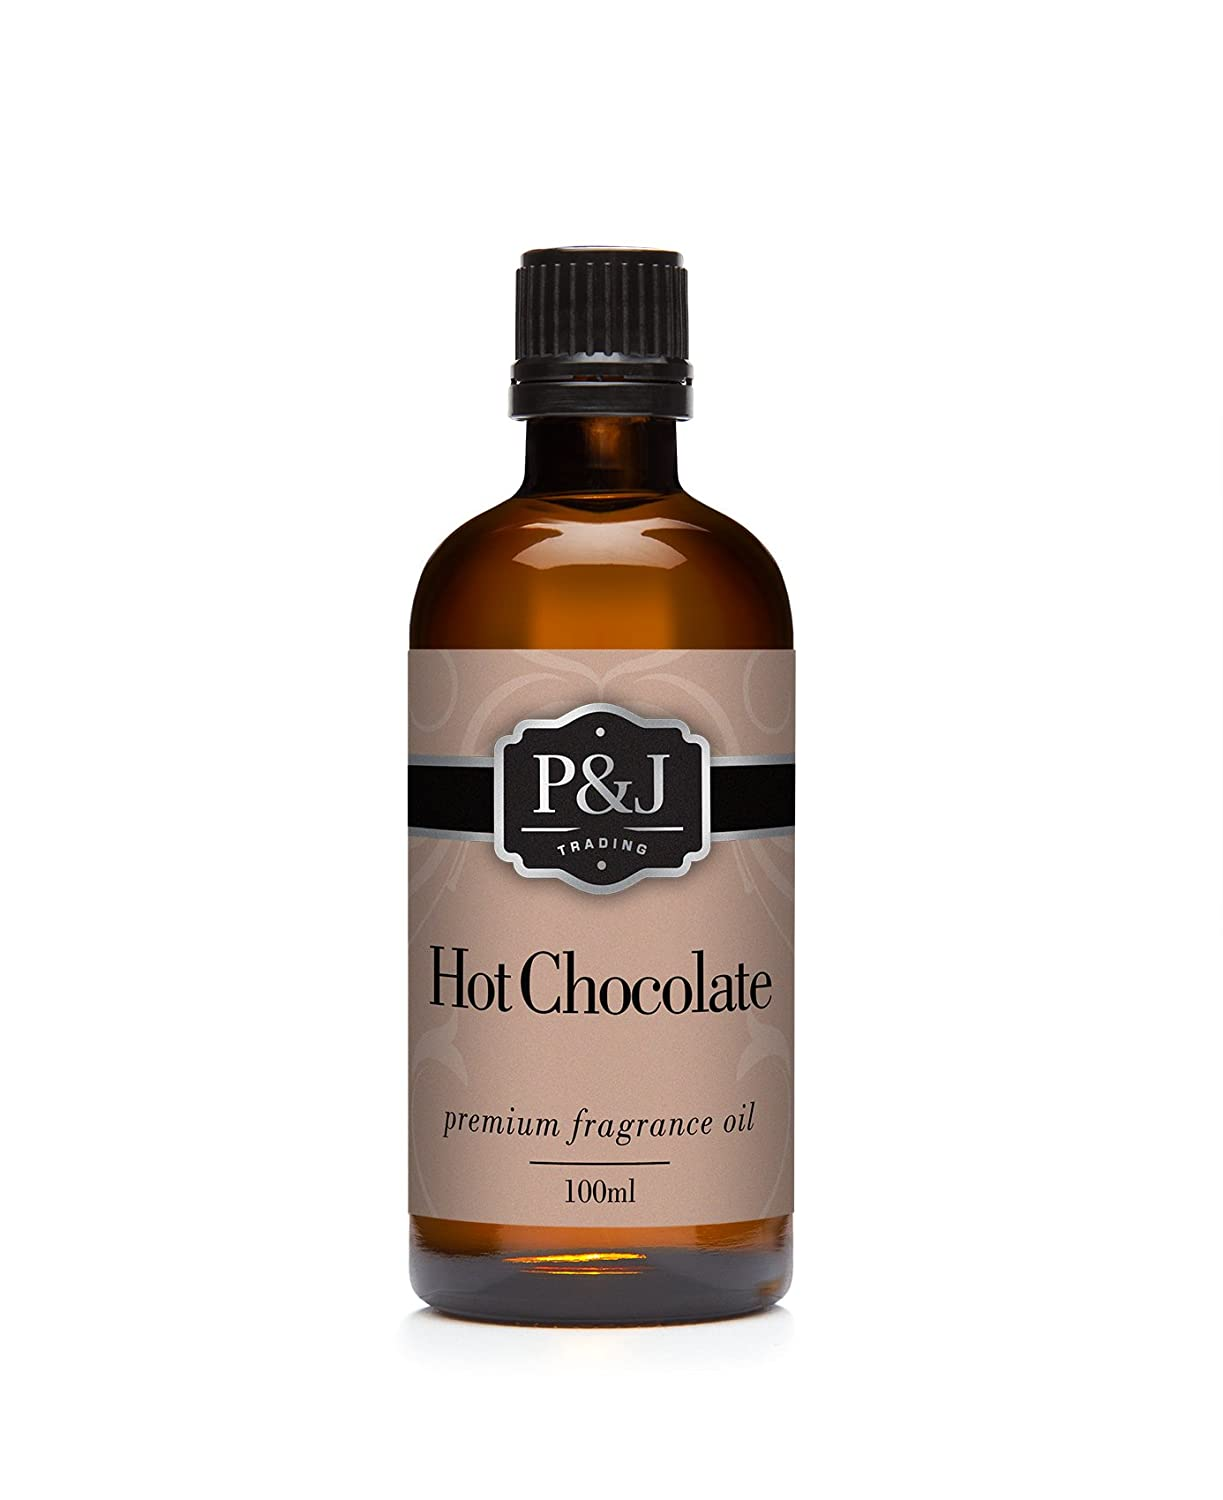 Hot Chocolate Fragrance Oil - Premium Grade Scented Oil - 100ml